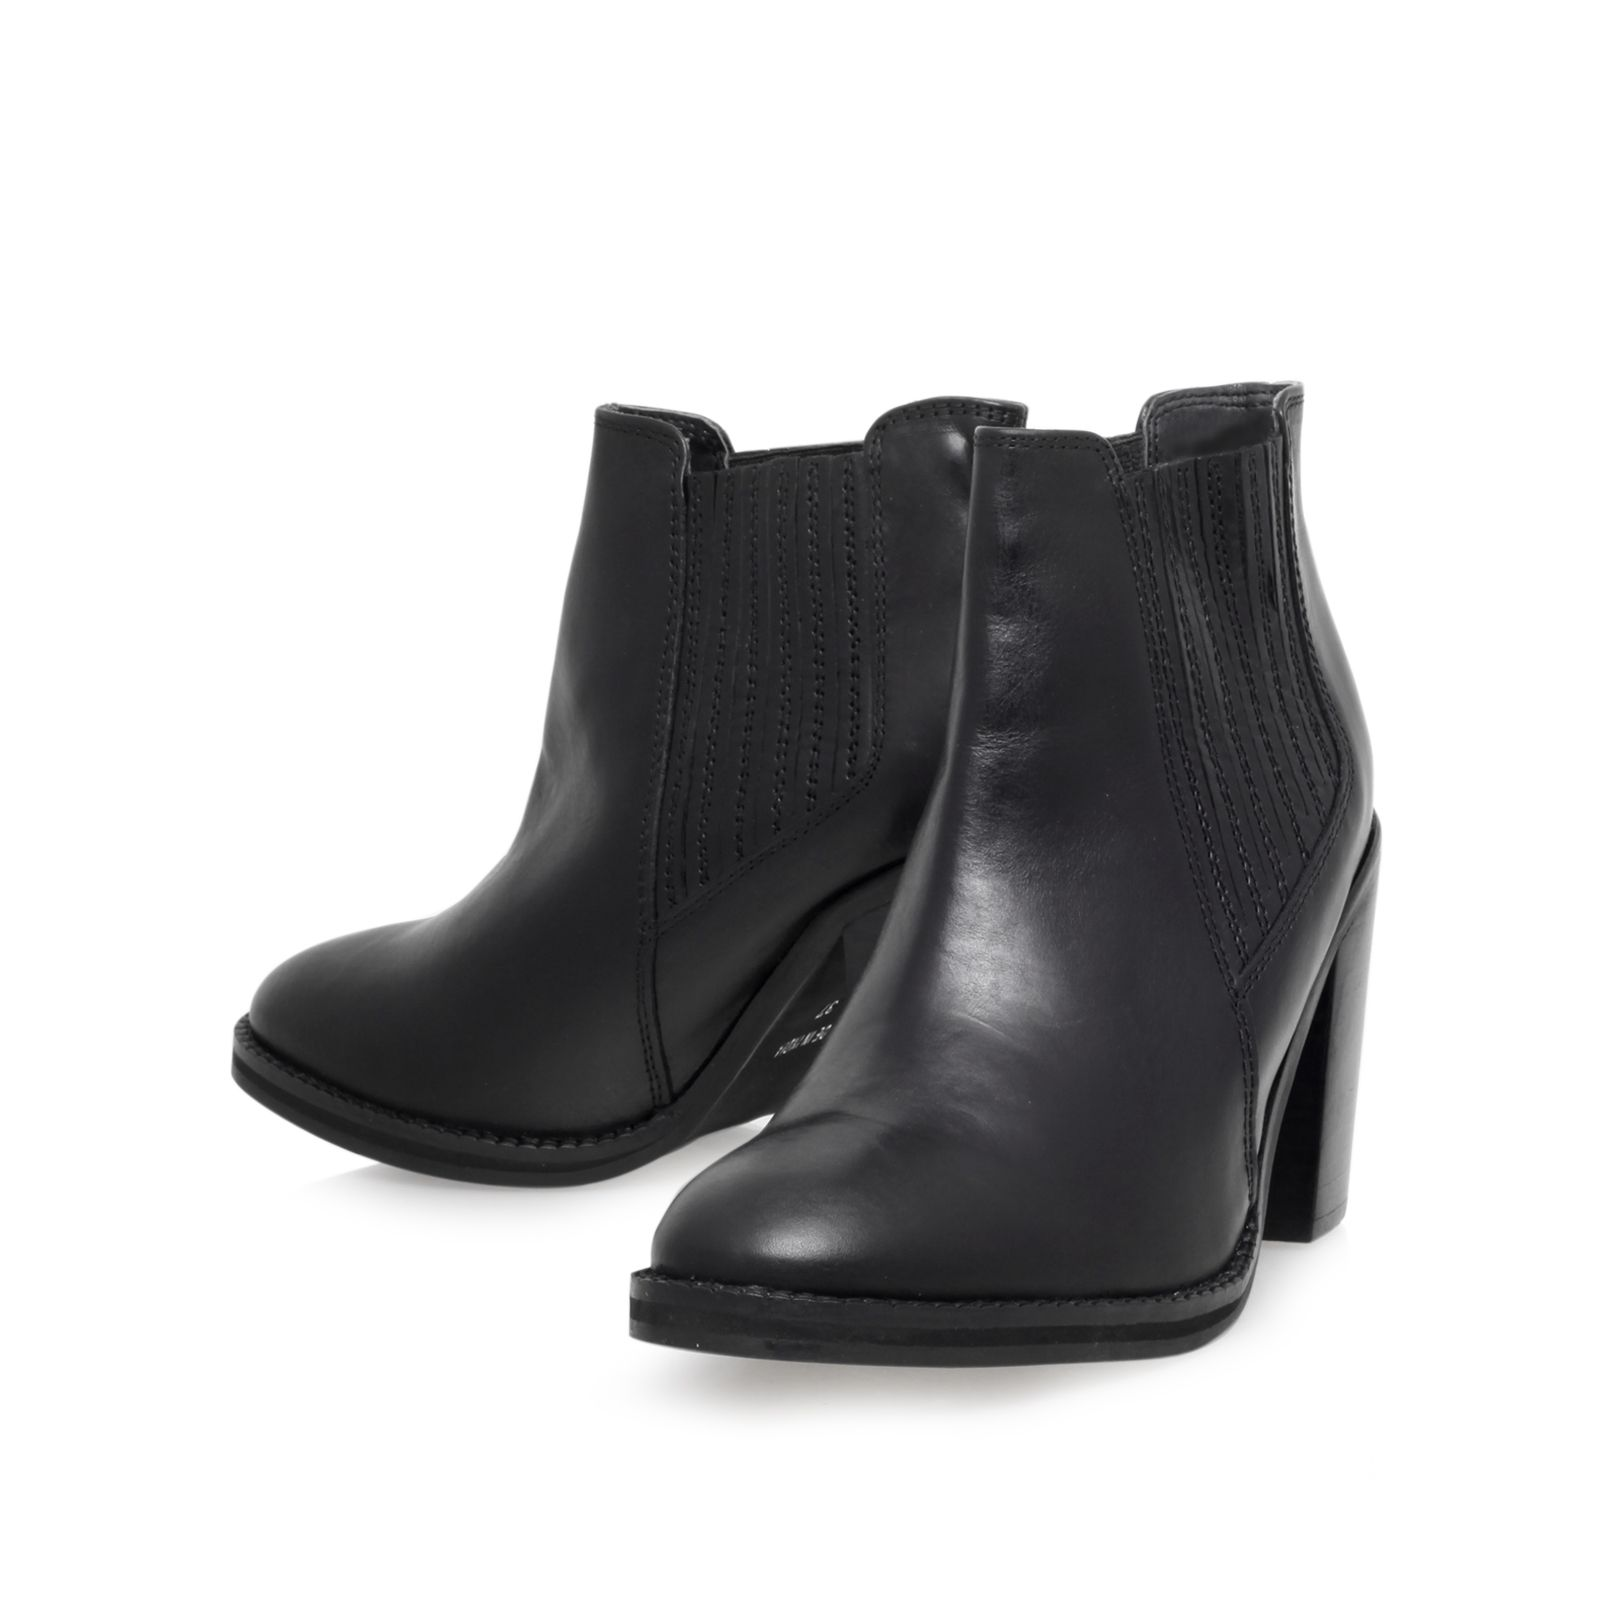 Tally high heel ankle boots